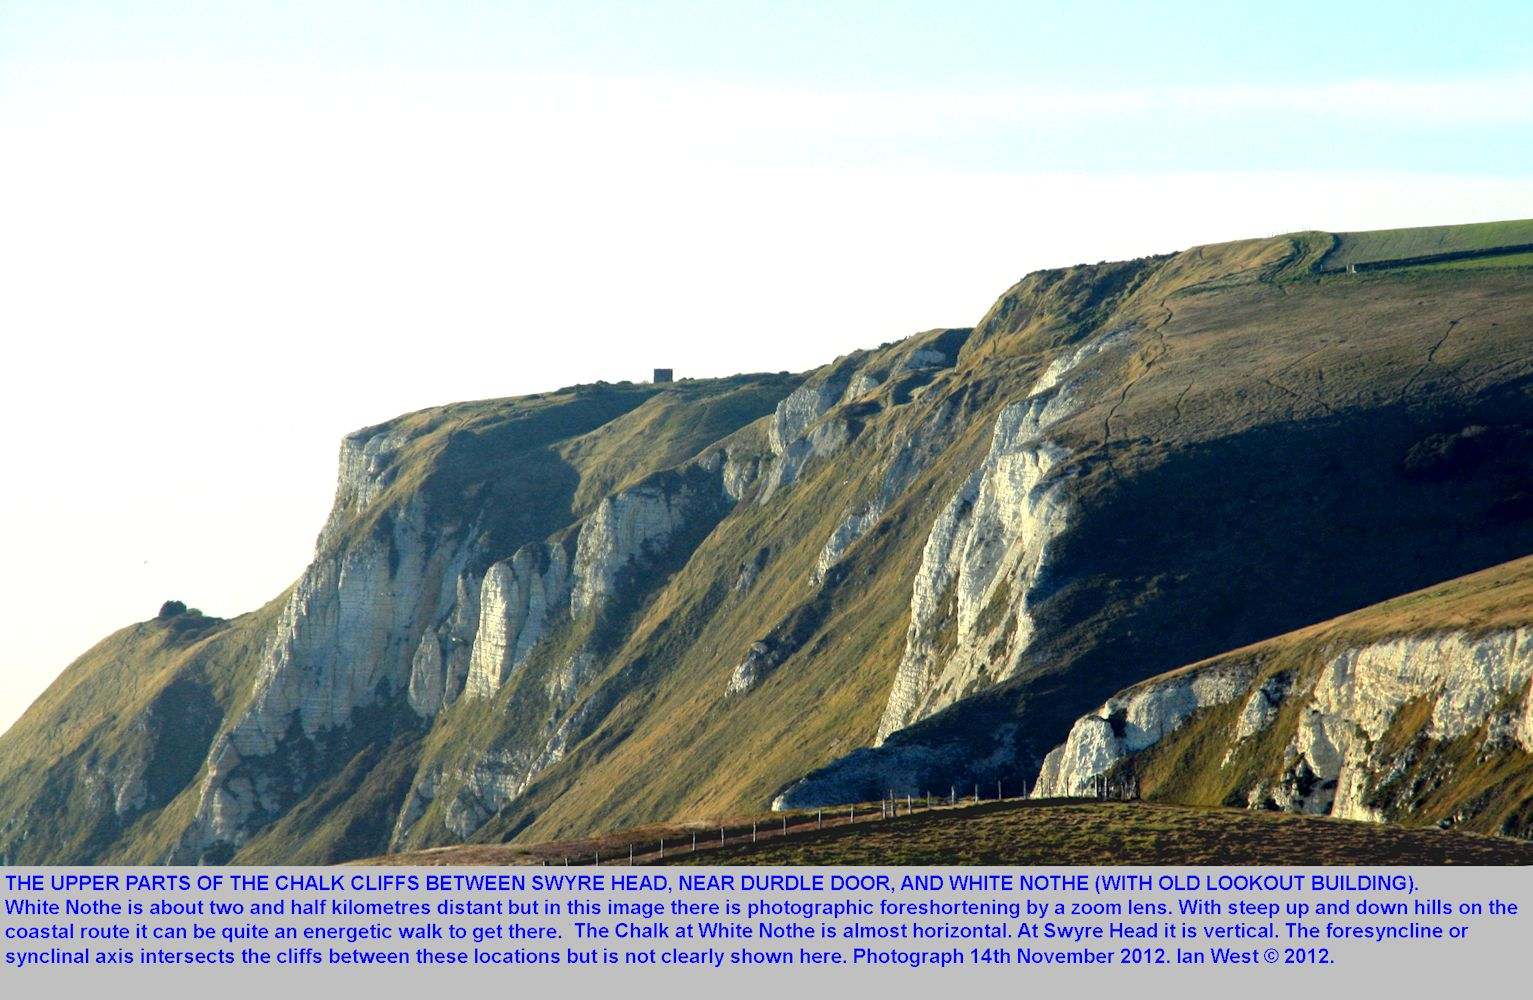 View towards White Nothe, from Swyre Head, near Durdle Door, Lulworth, Dorset, 14th November 2012